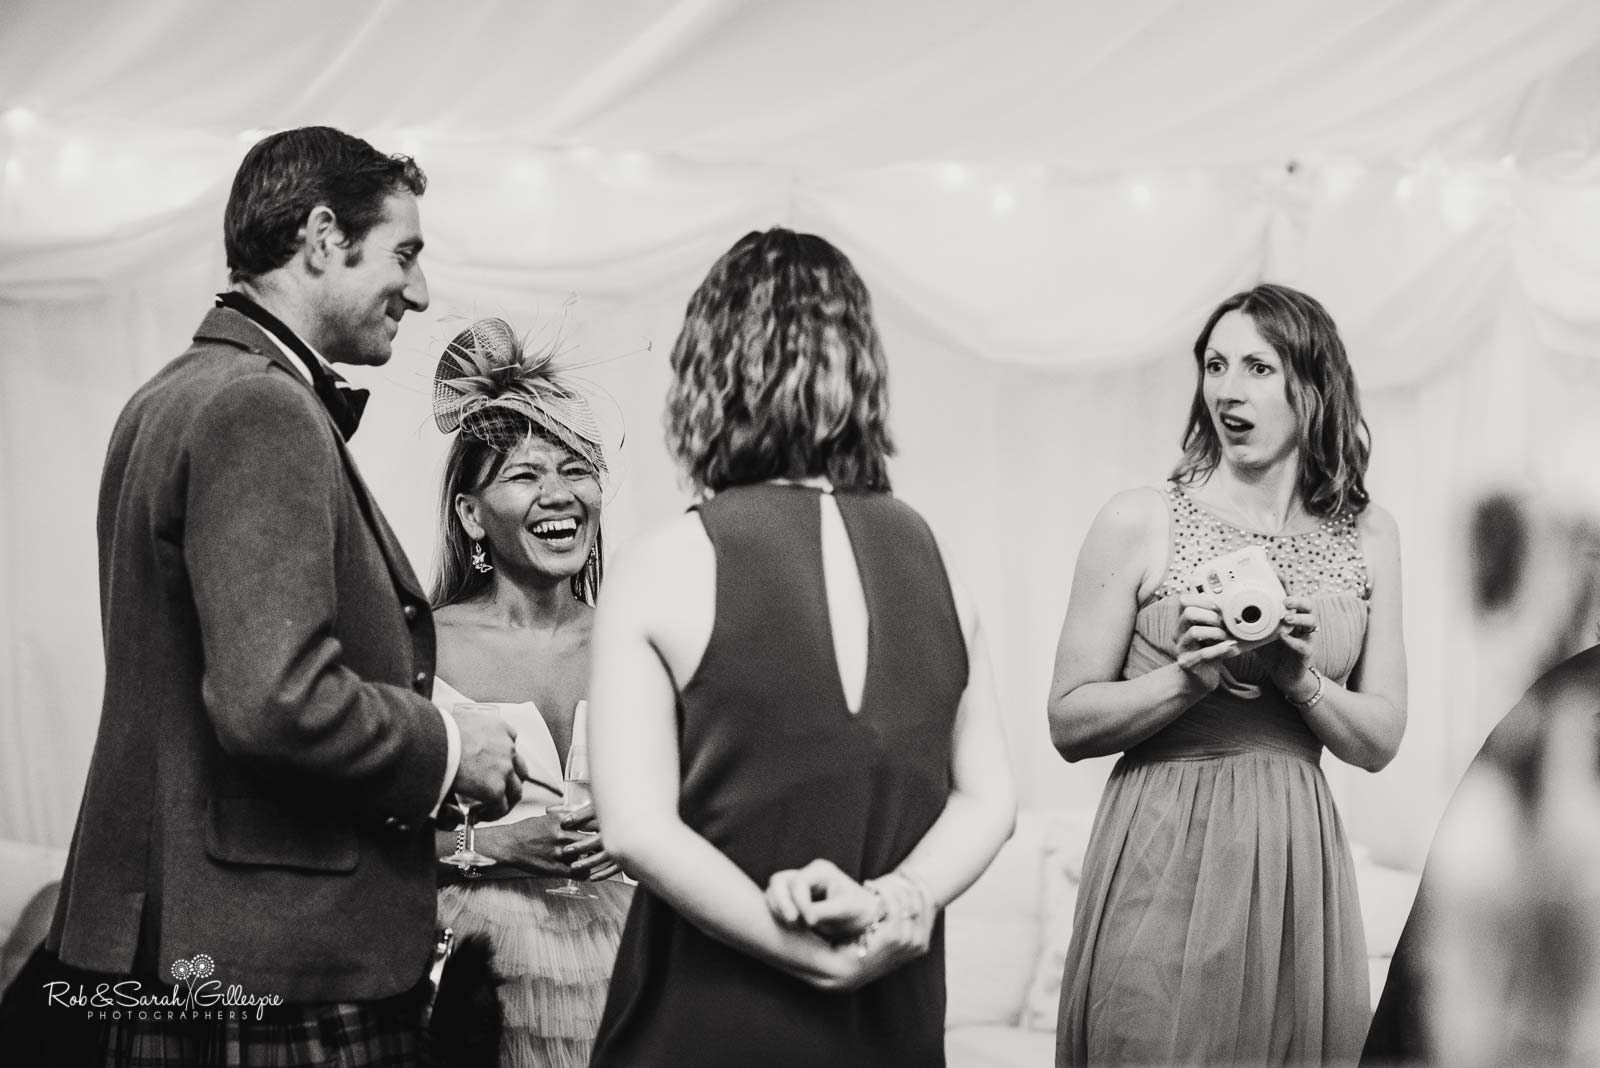 Natural and candid wedding photography at Wethele Manor